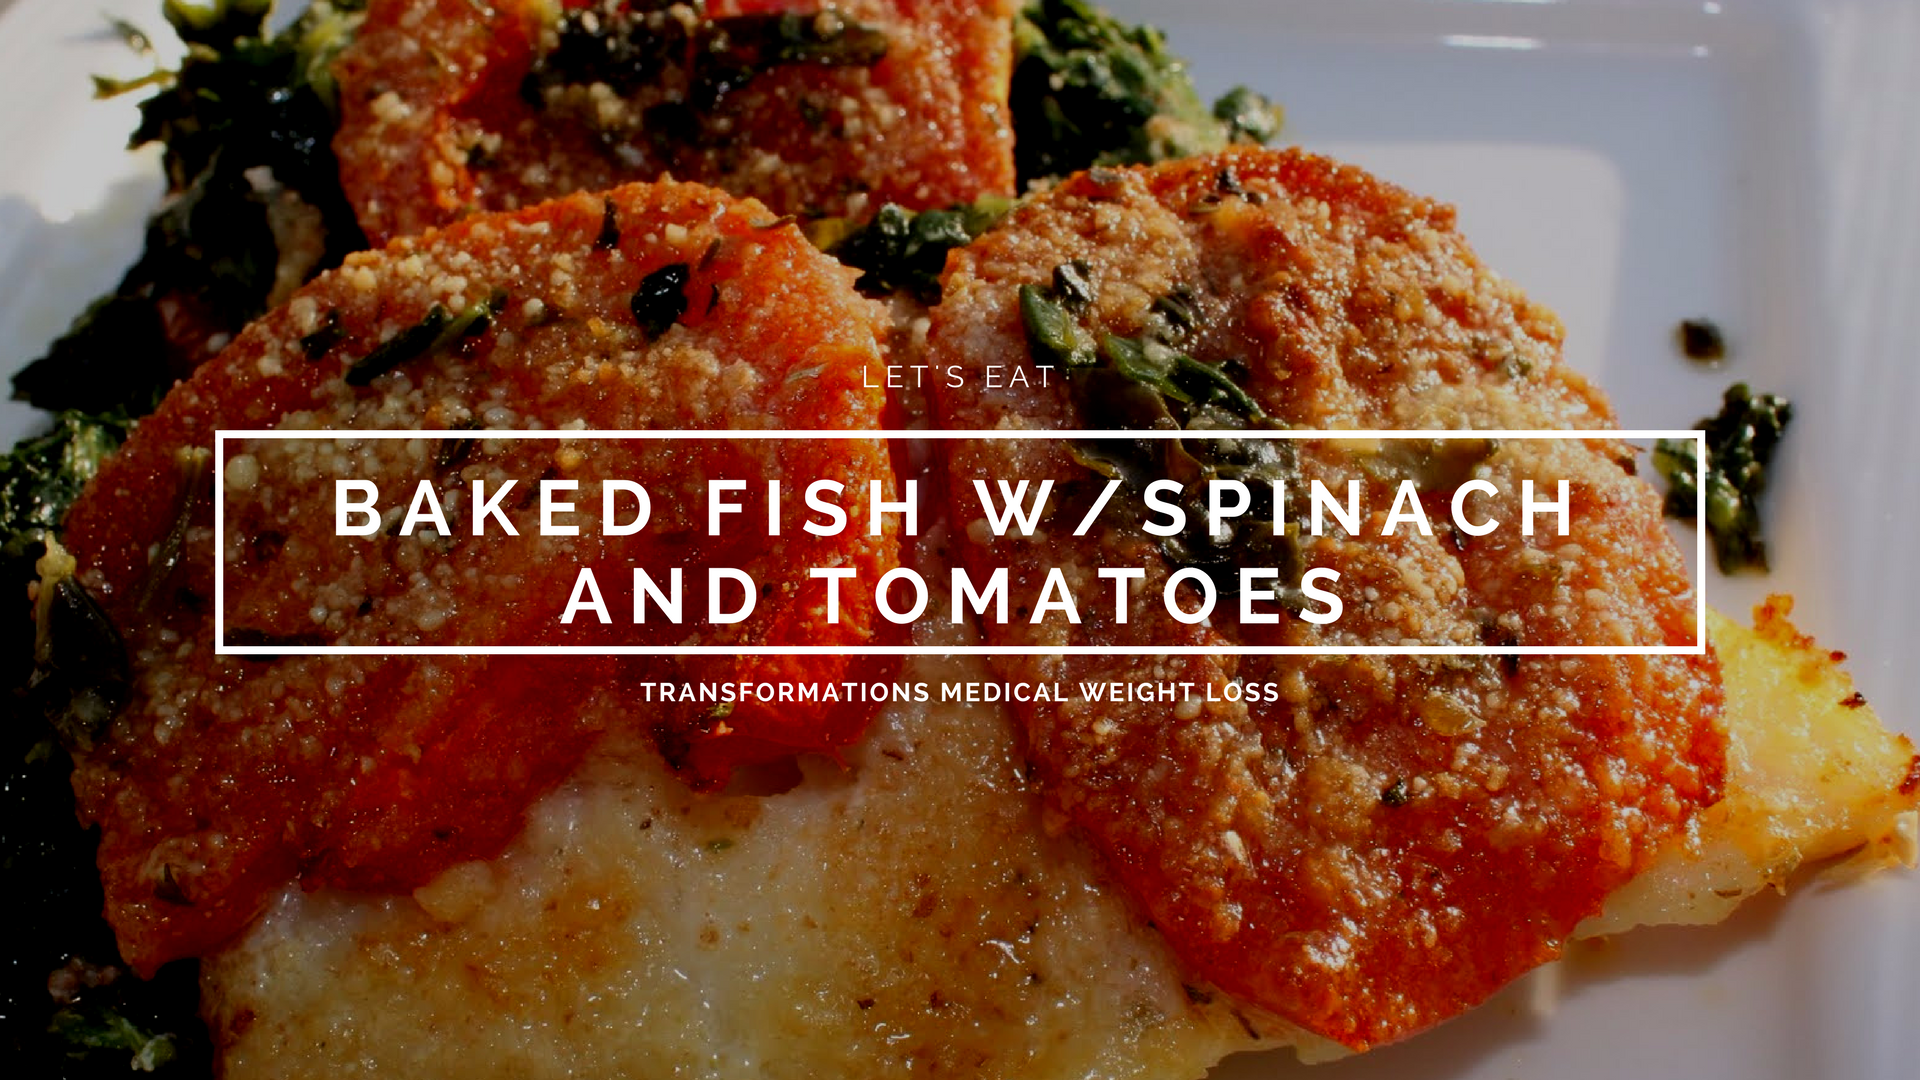 Baked Fish w/Spinach and Tomatoes